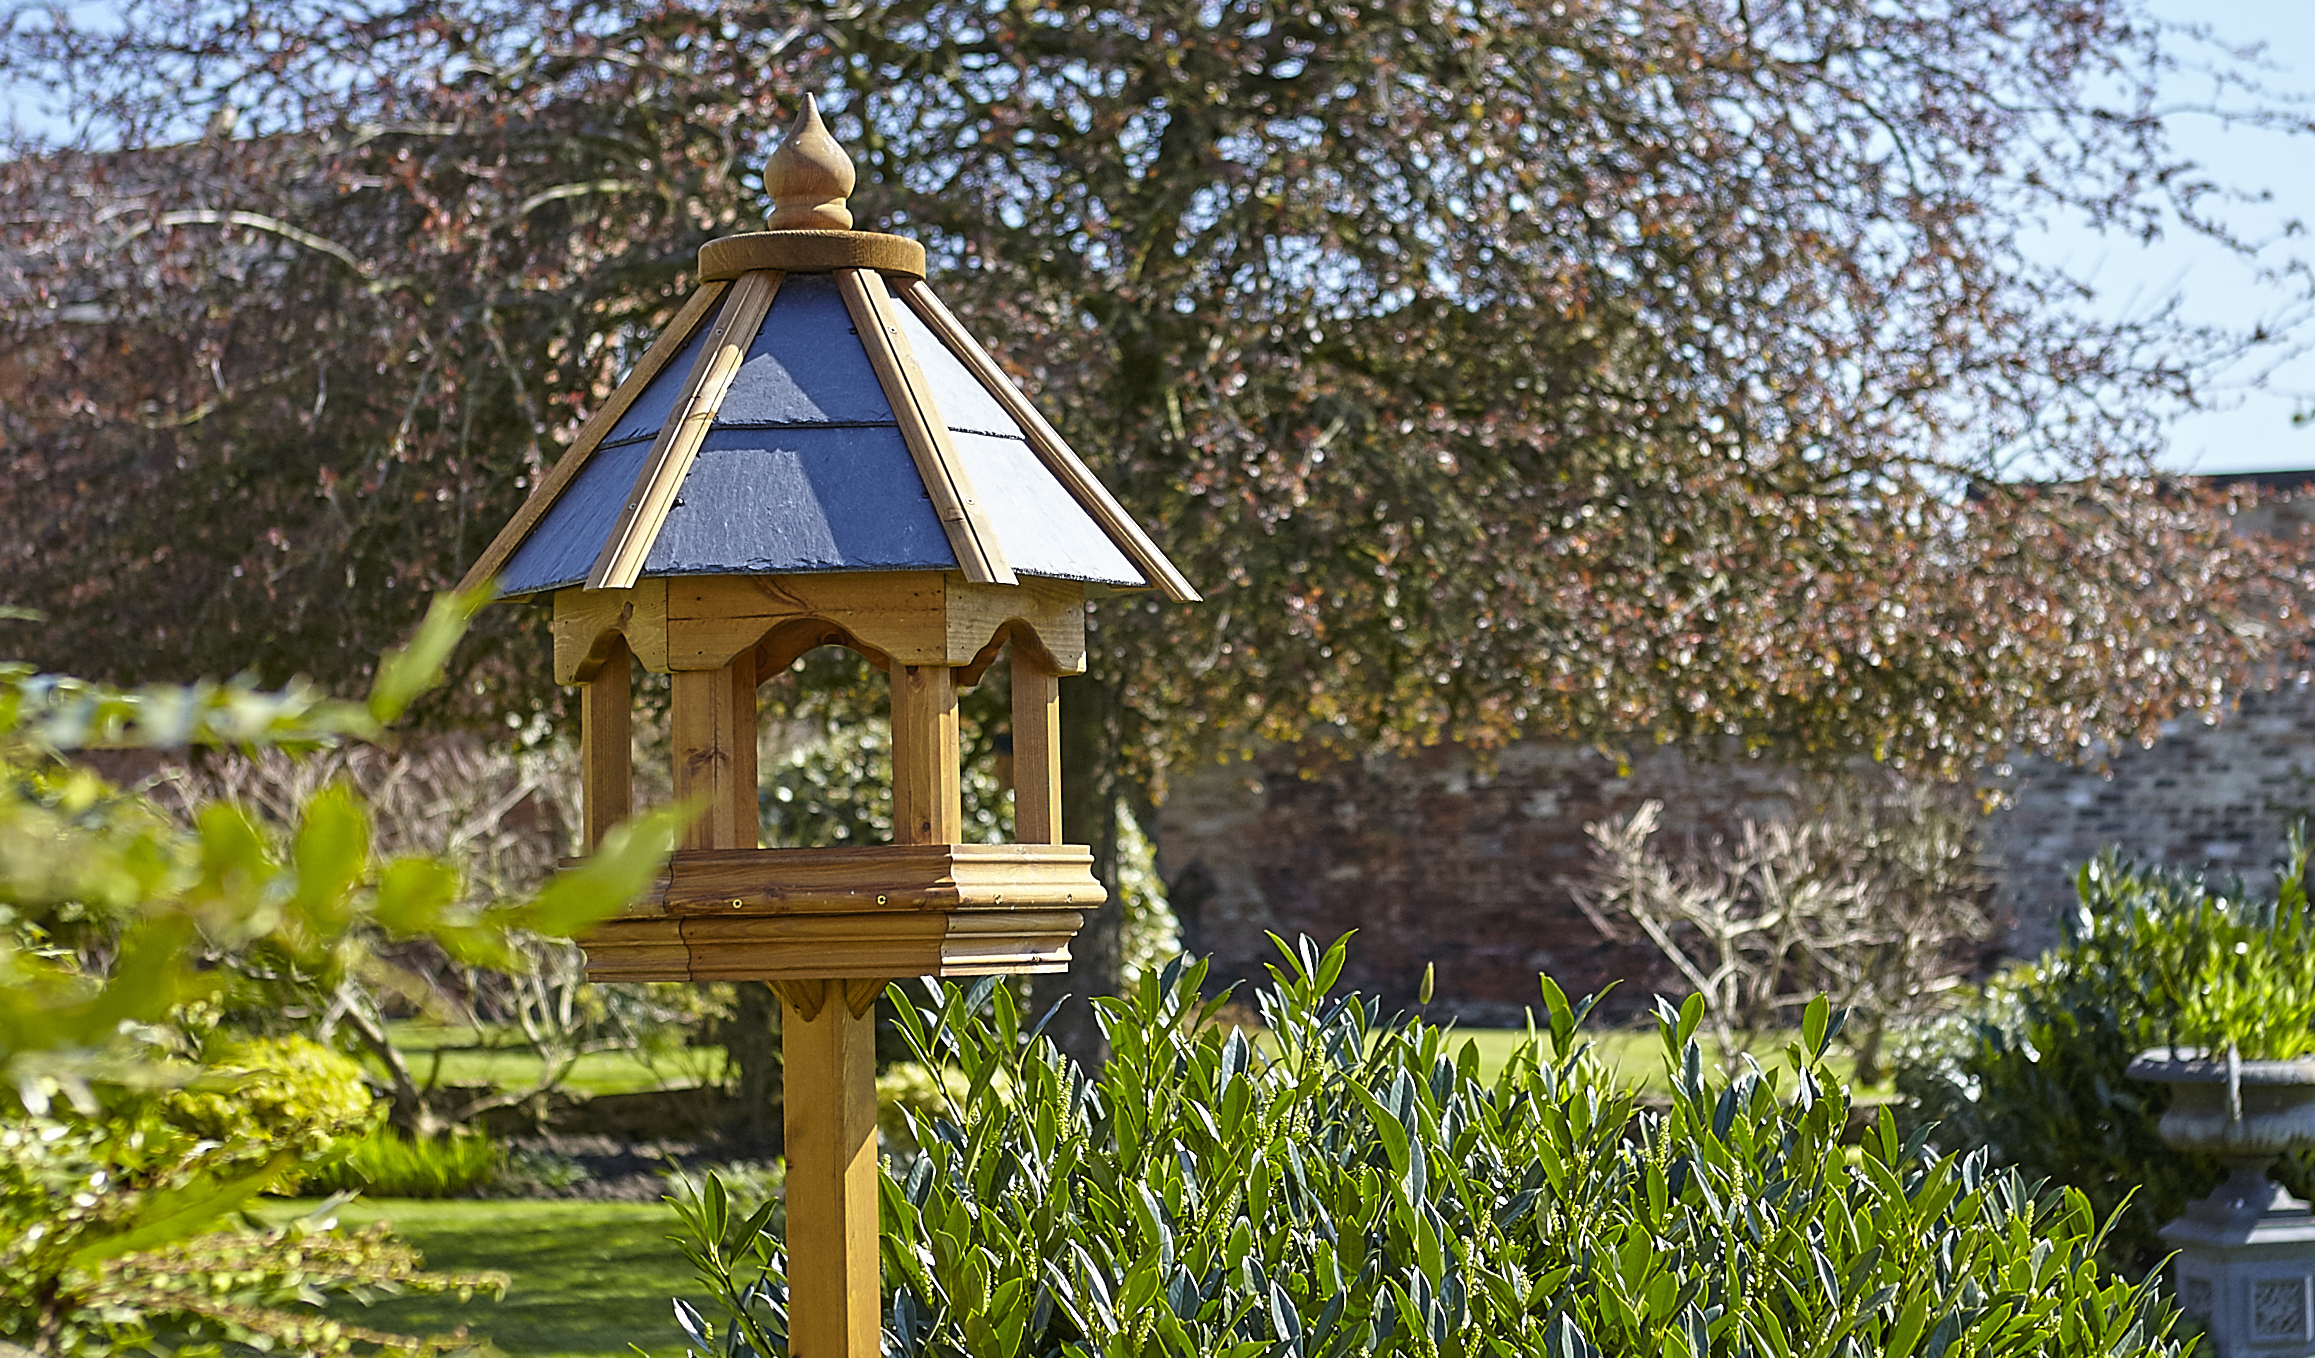 Tom Chambers Bird Tables made in the United Kingdom